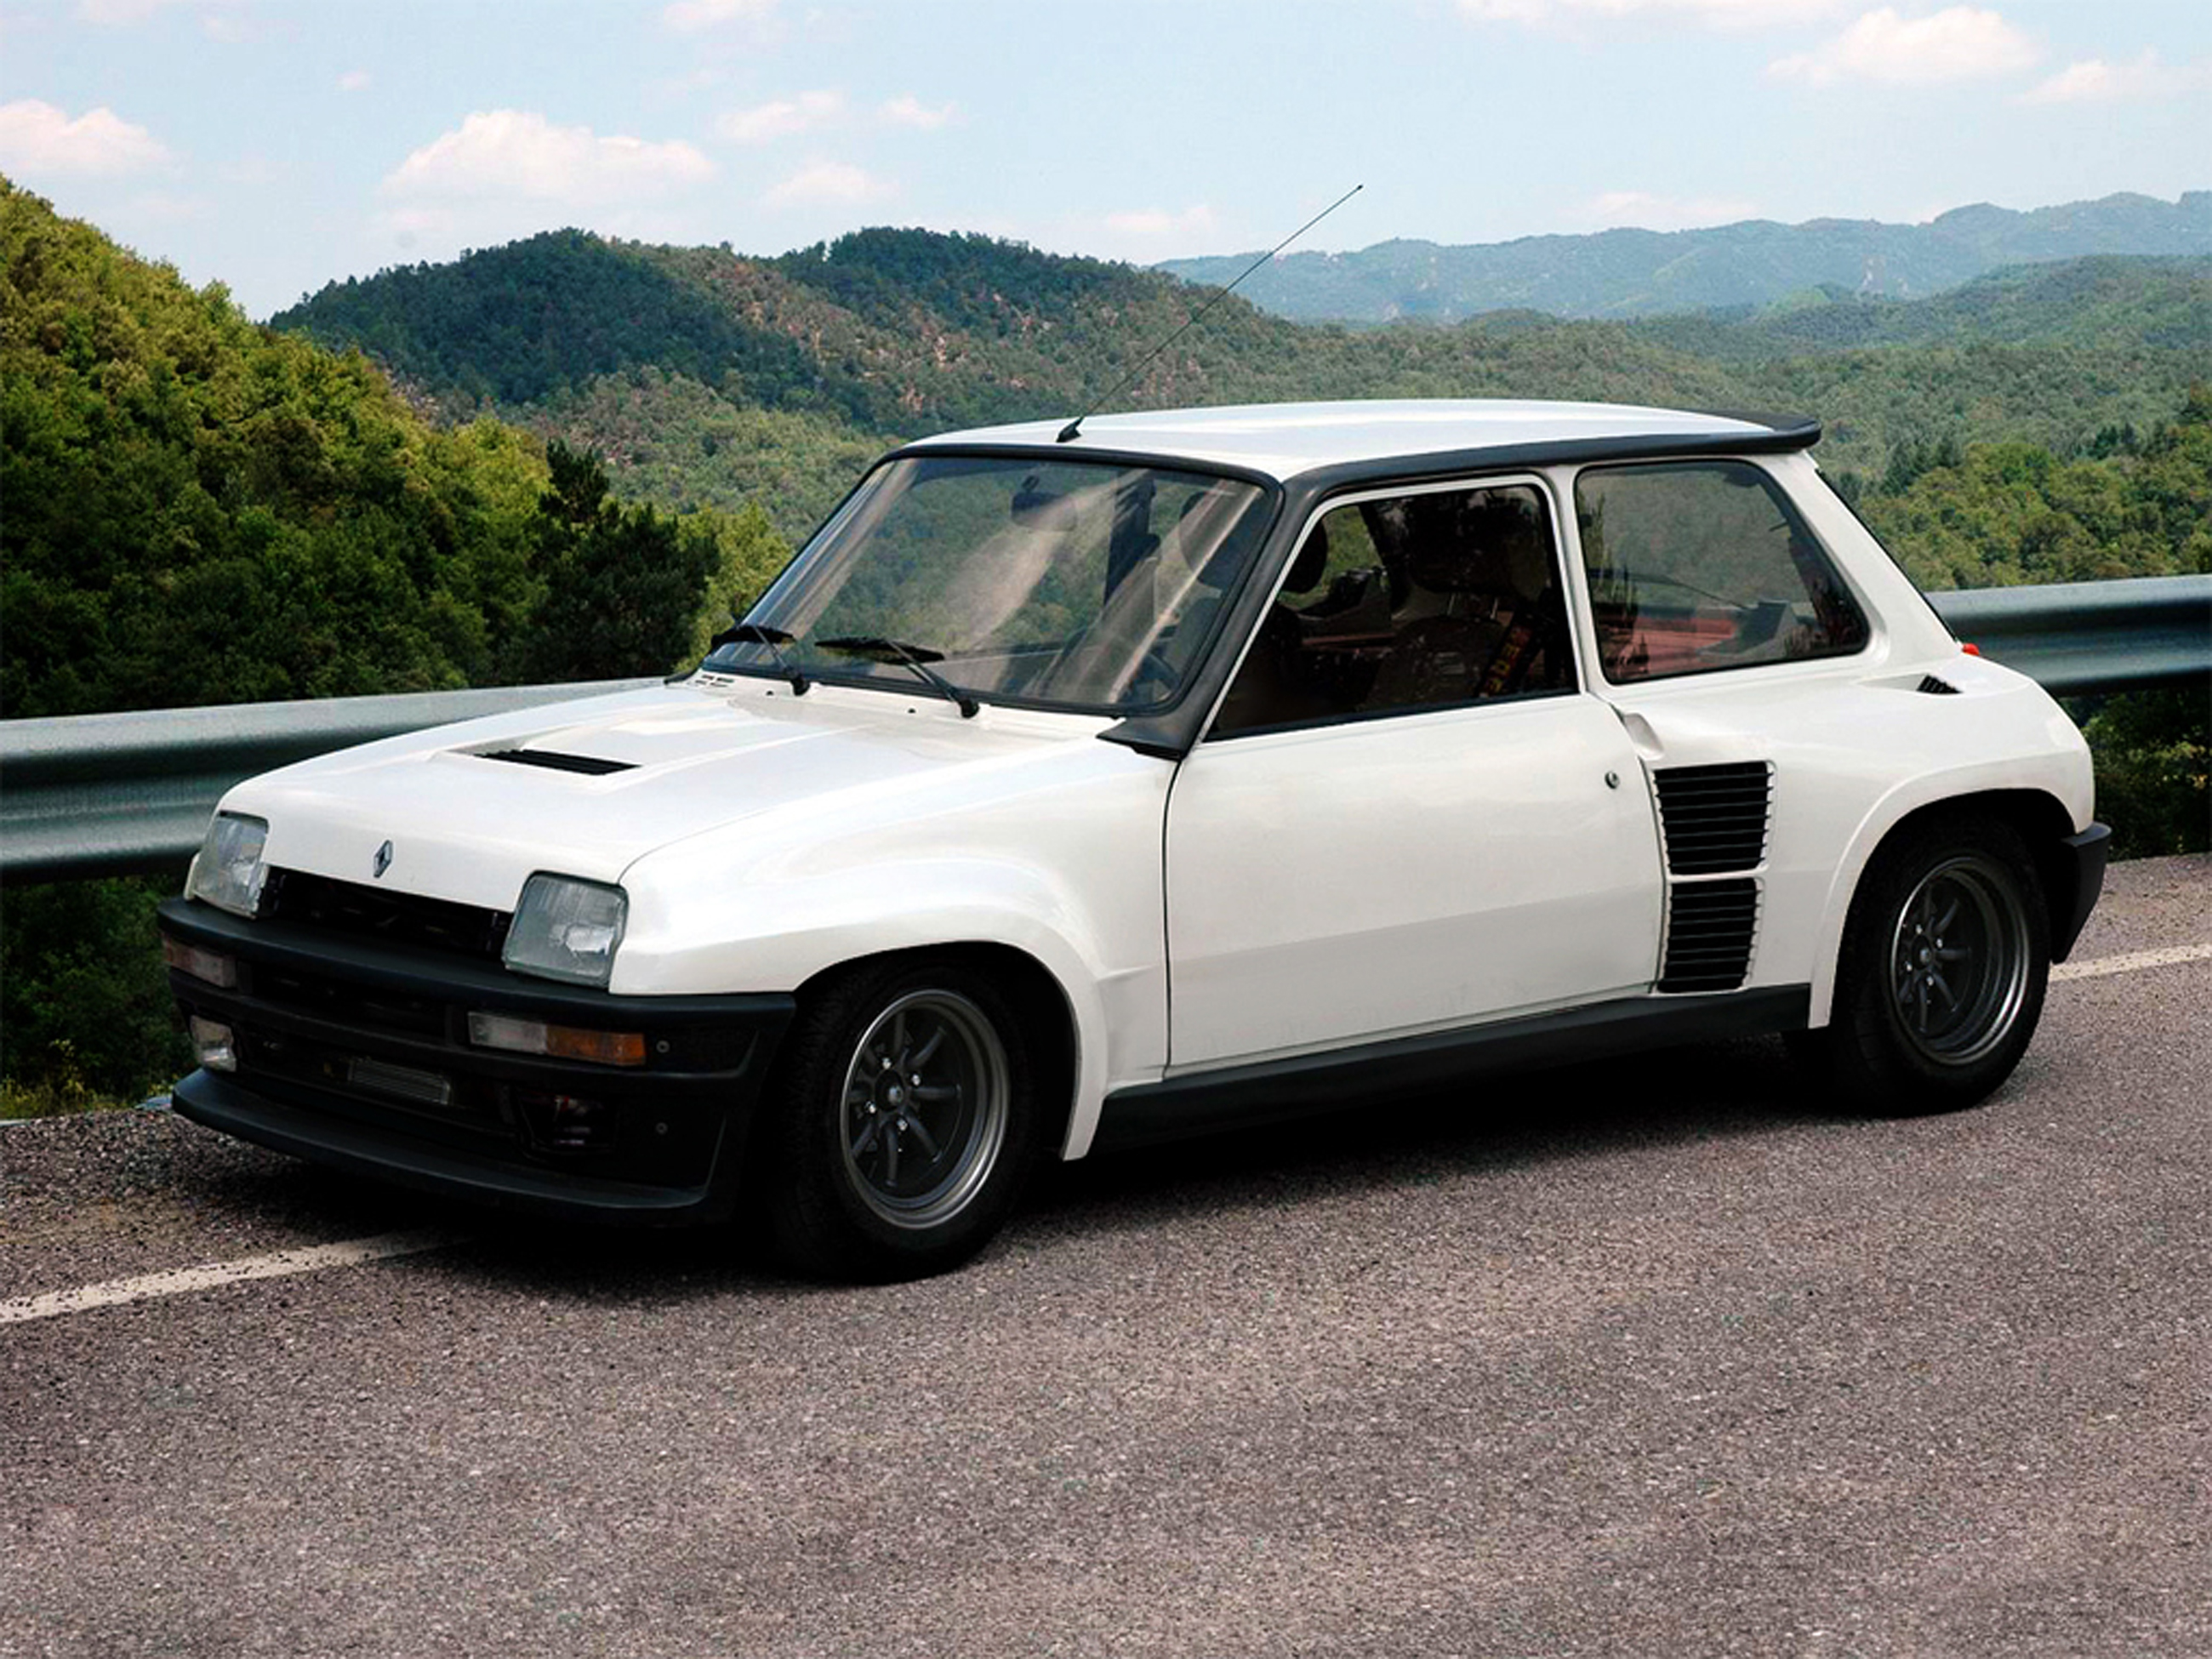 Renault 5 Turbo: 9 фото